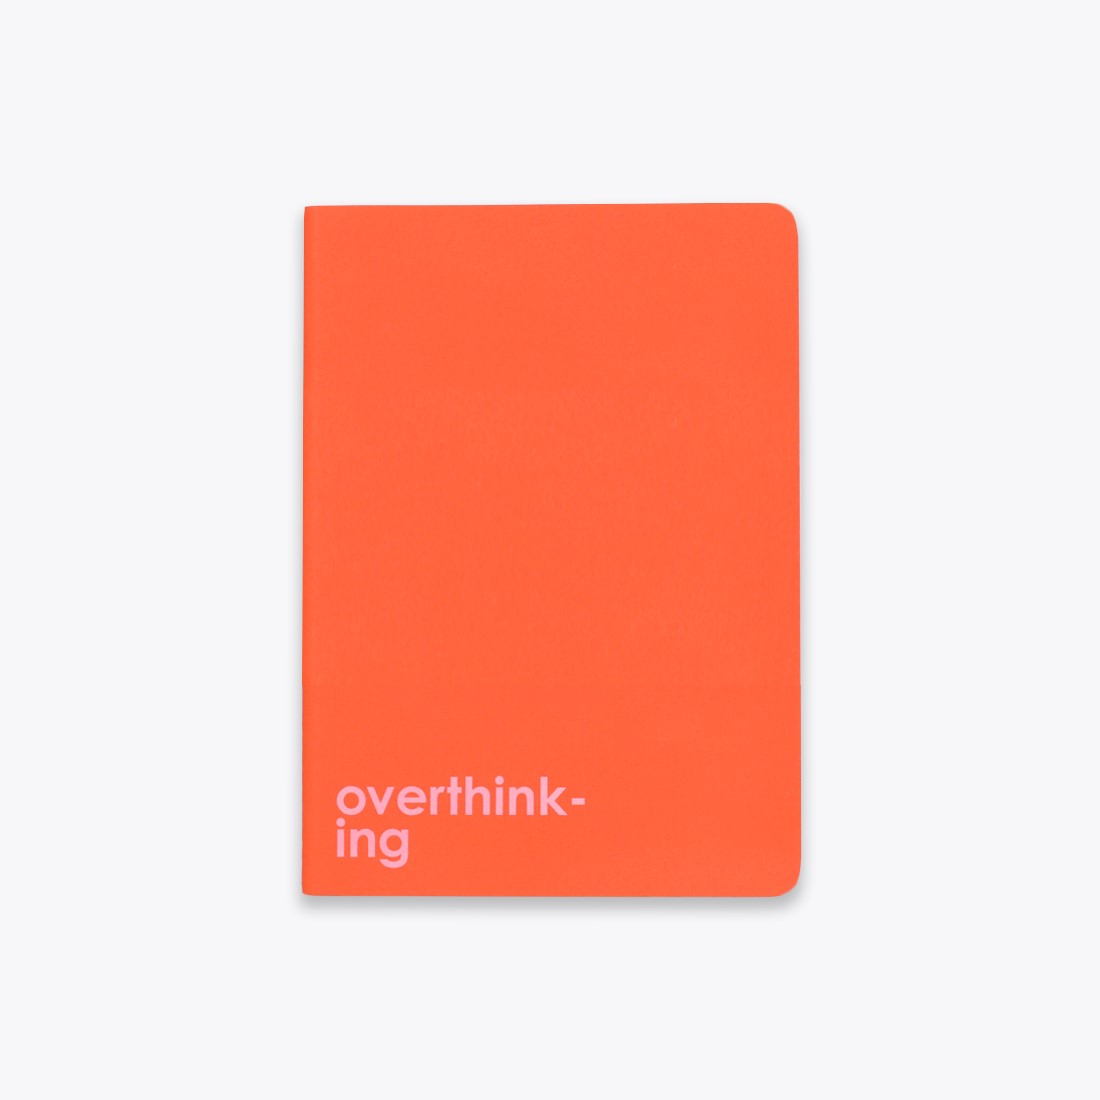 Overthinking Saddle Stitch Notebook by Ashley Mary